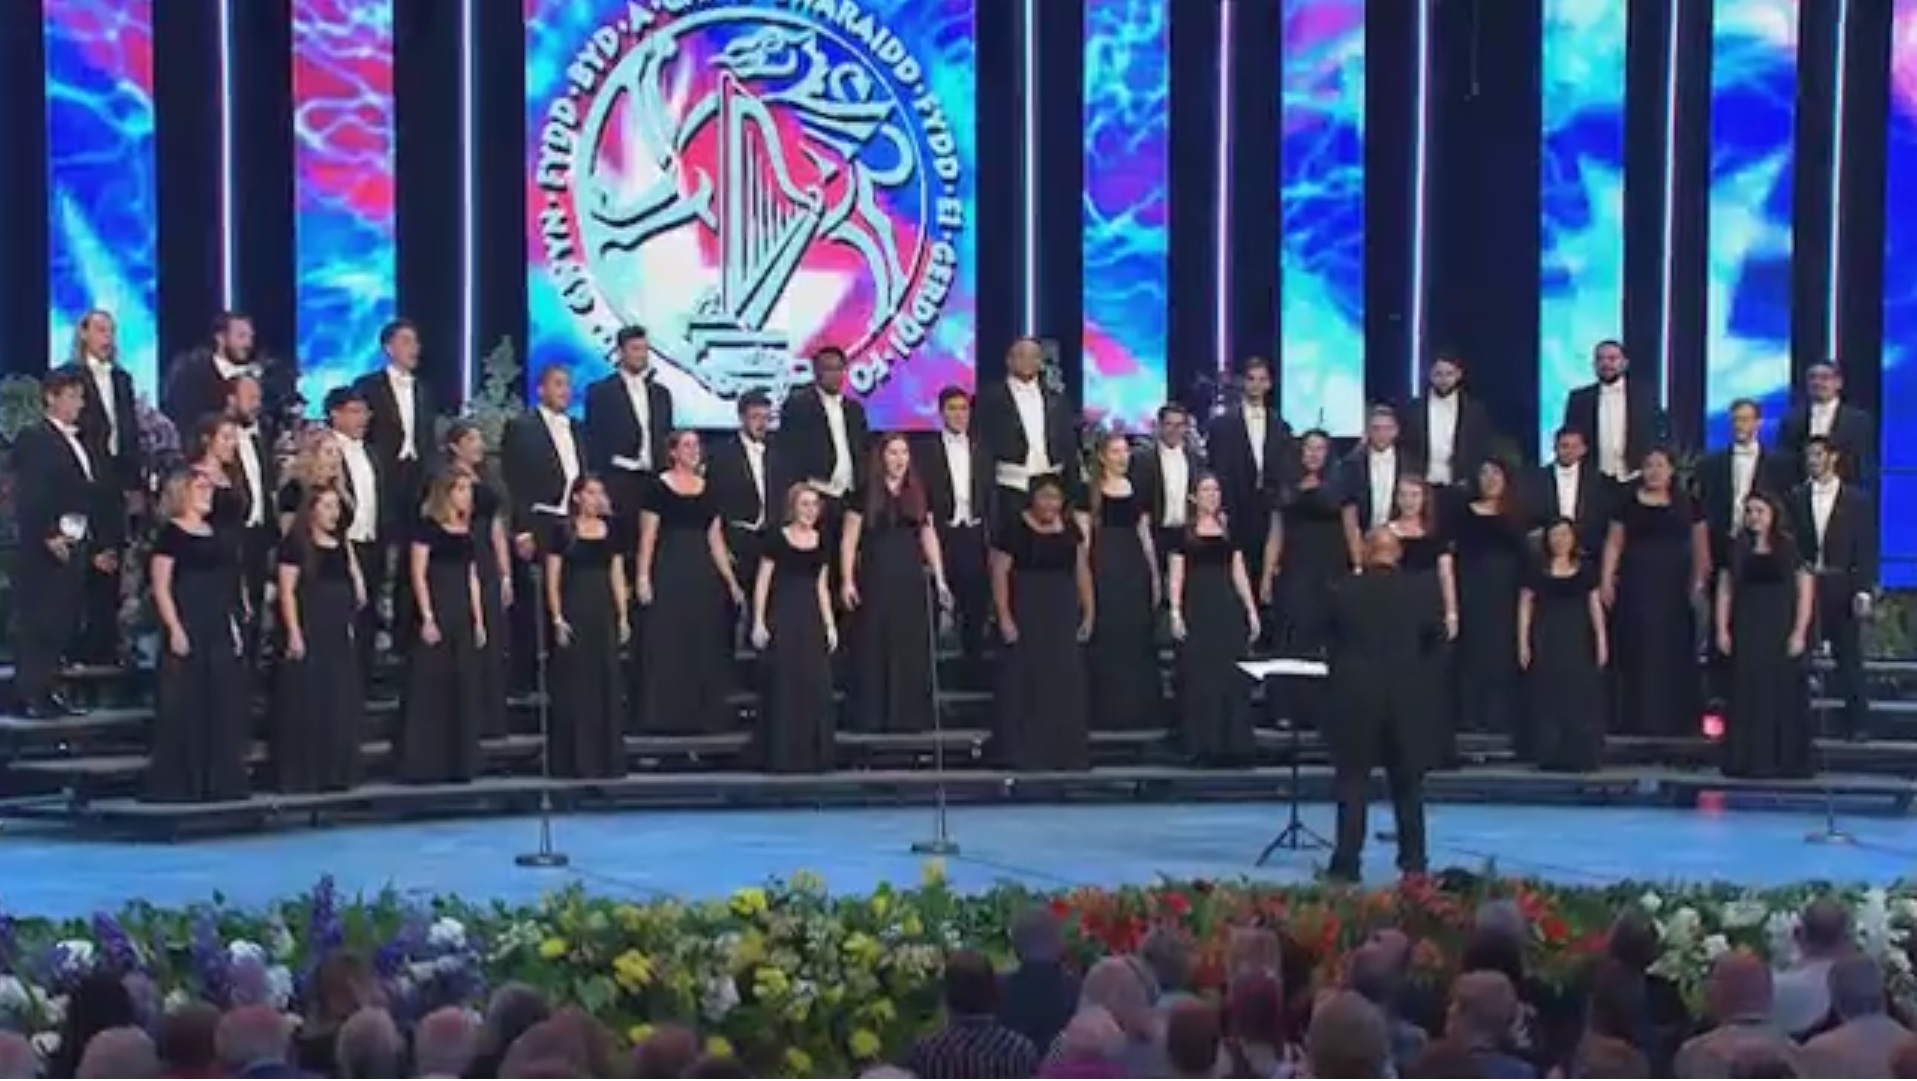 The Choral Tales Project is recorded by the renowned Chamber Choir of California State University, Long Beach, directed by Dr. Jonathan Talberg. The choir is shown here in an international competition in Wales, where they won the Choir of the World Award.